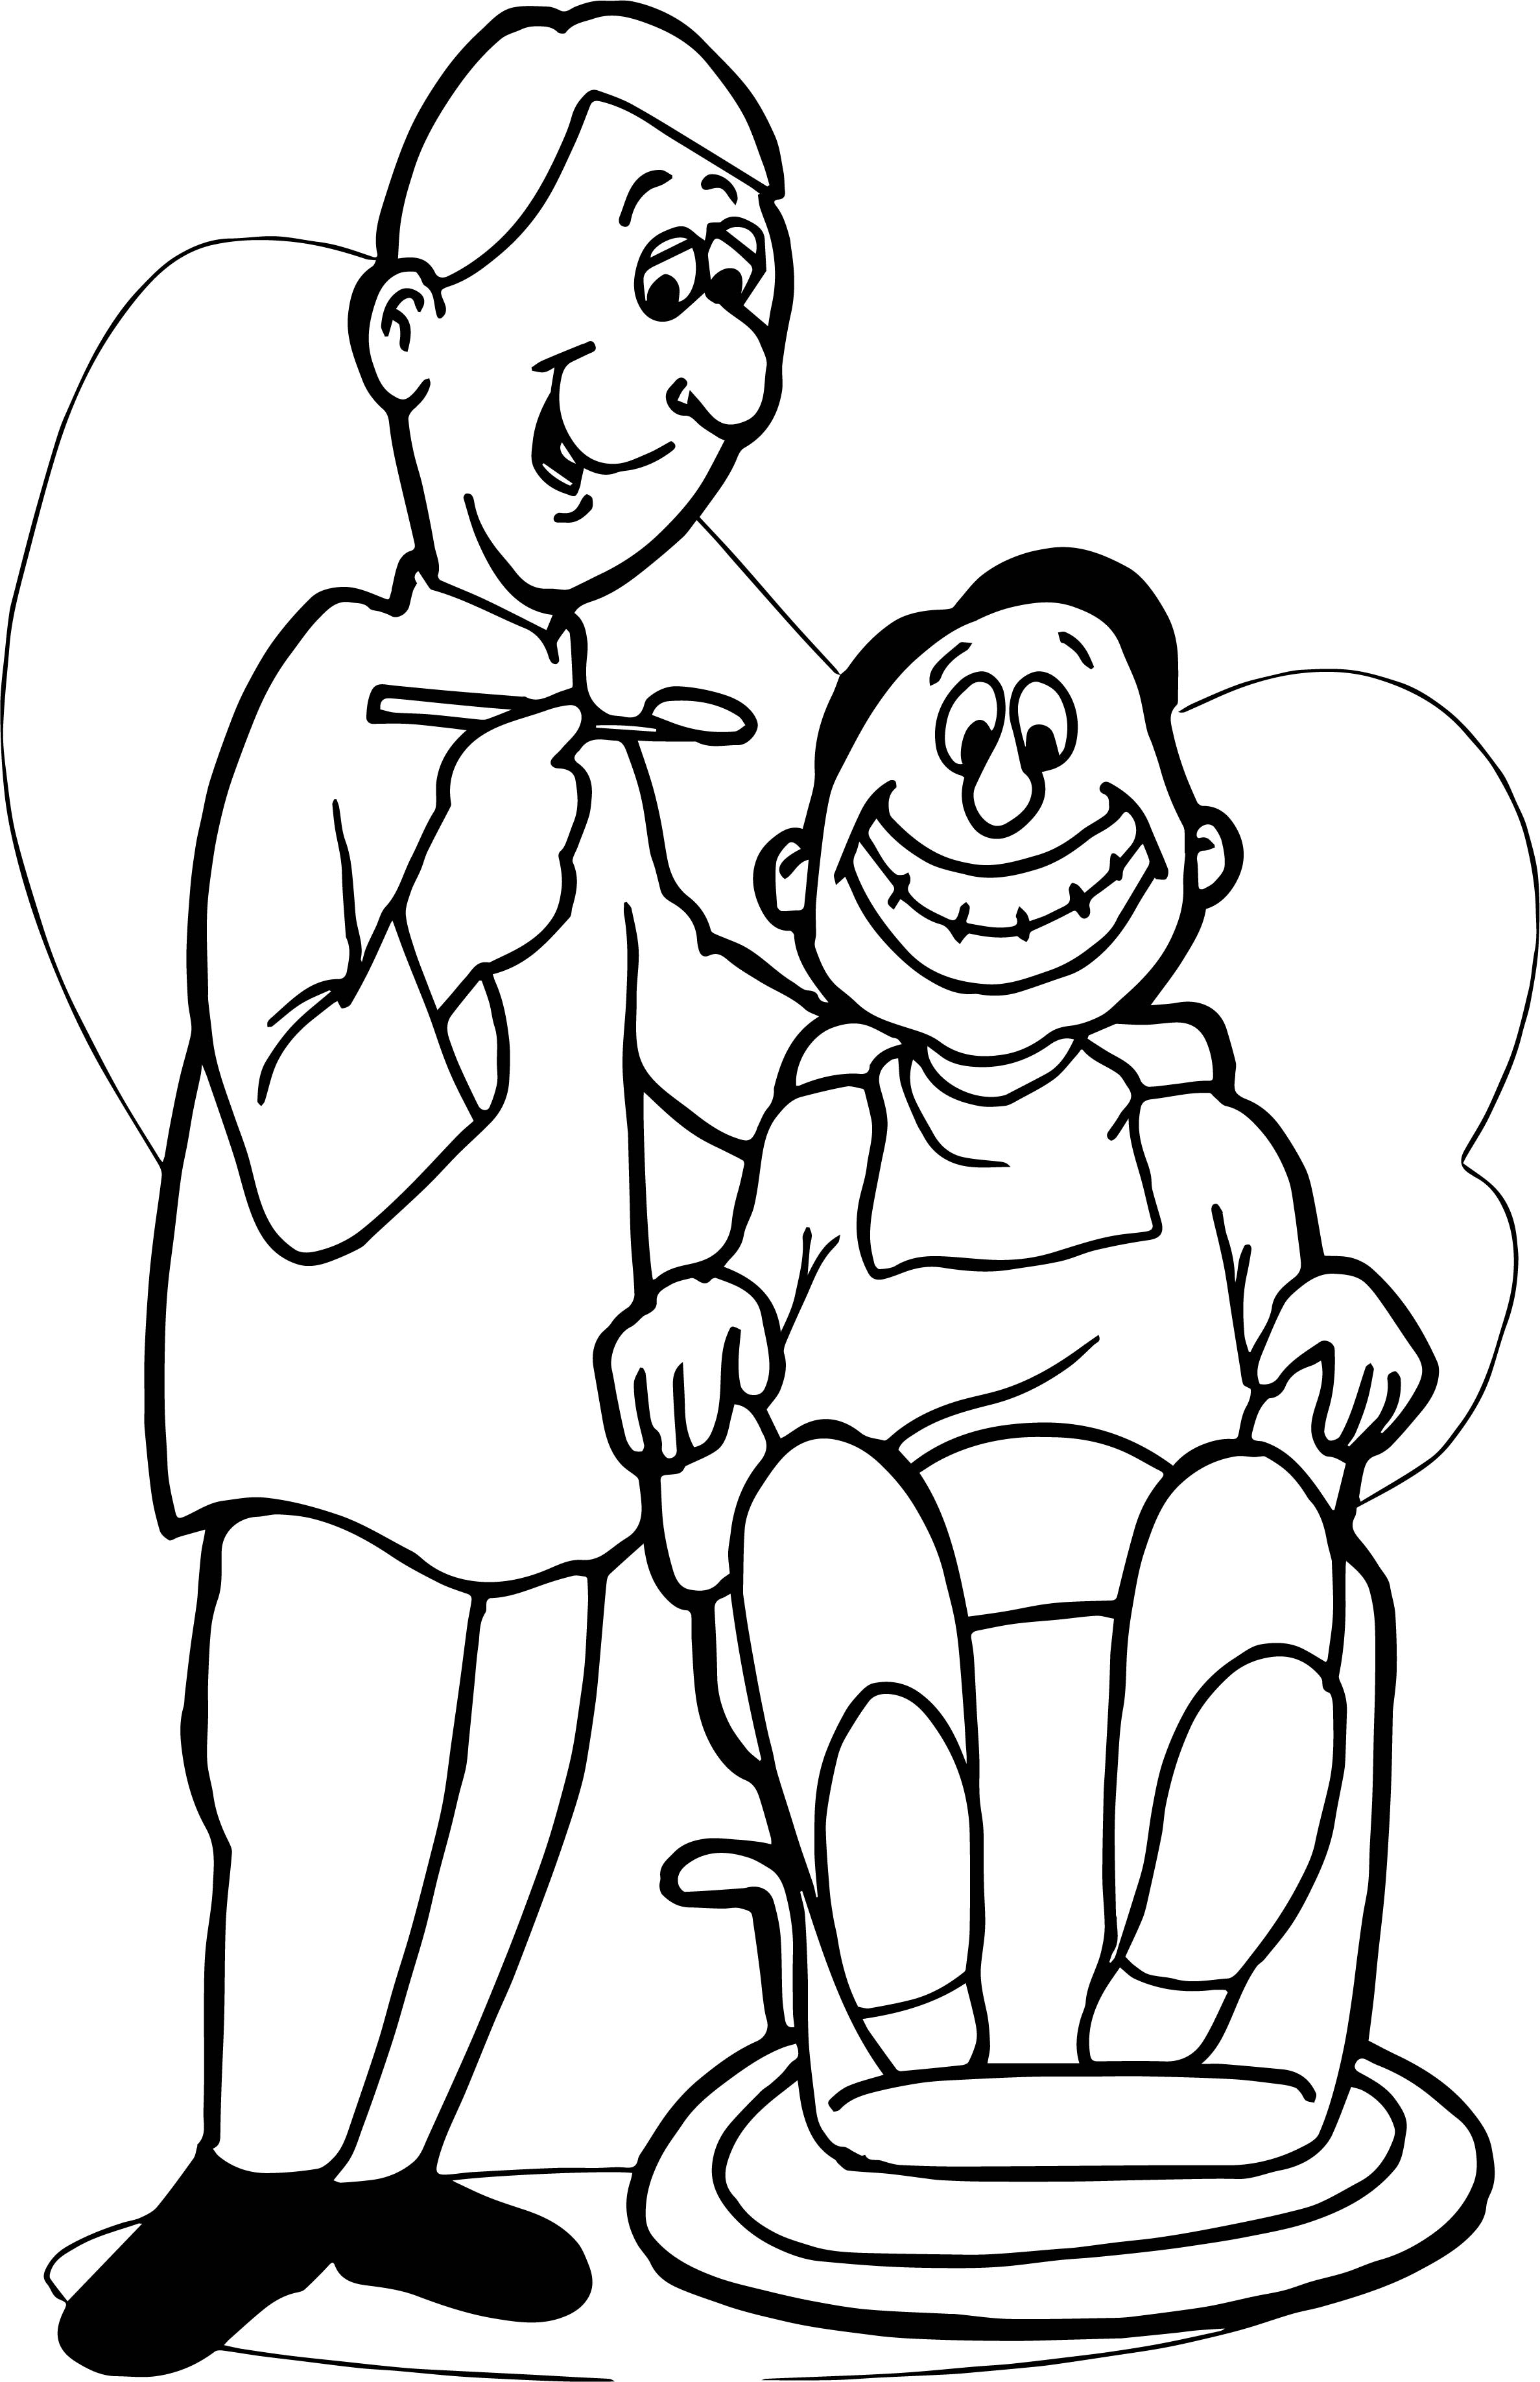 Fine Milkshake Coloring Pages Mold Ways to Use Coloring Pages Download Of No Fear Kids Zone Download